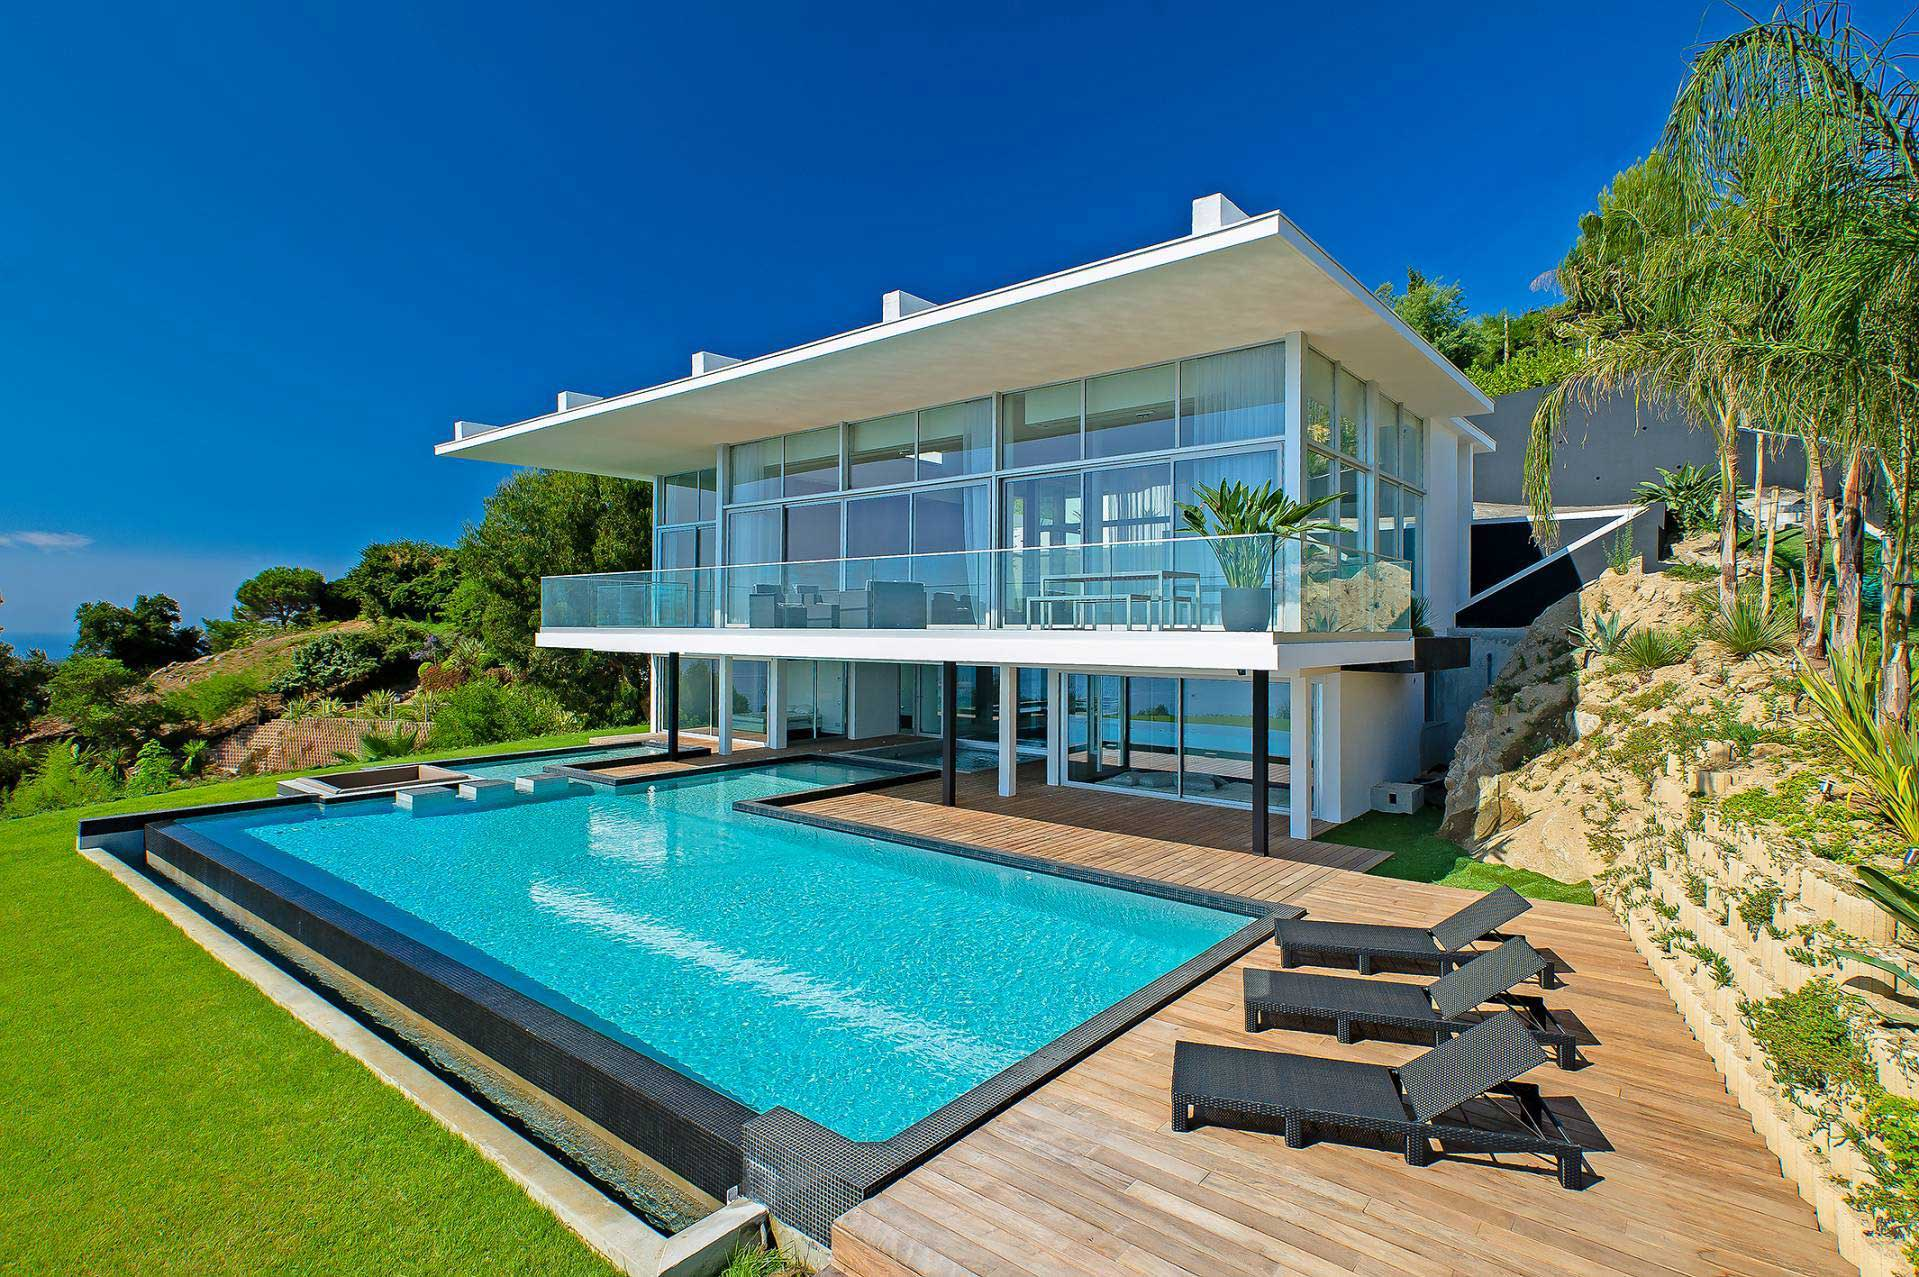 Villa contemporaine avec piscine saint tropez - Photo maison avec piscine ...